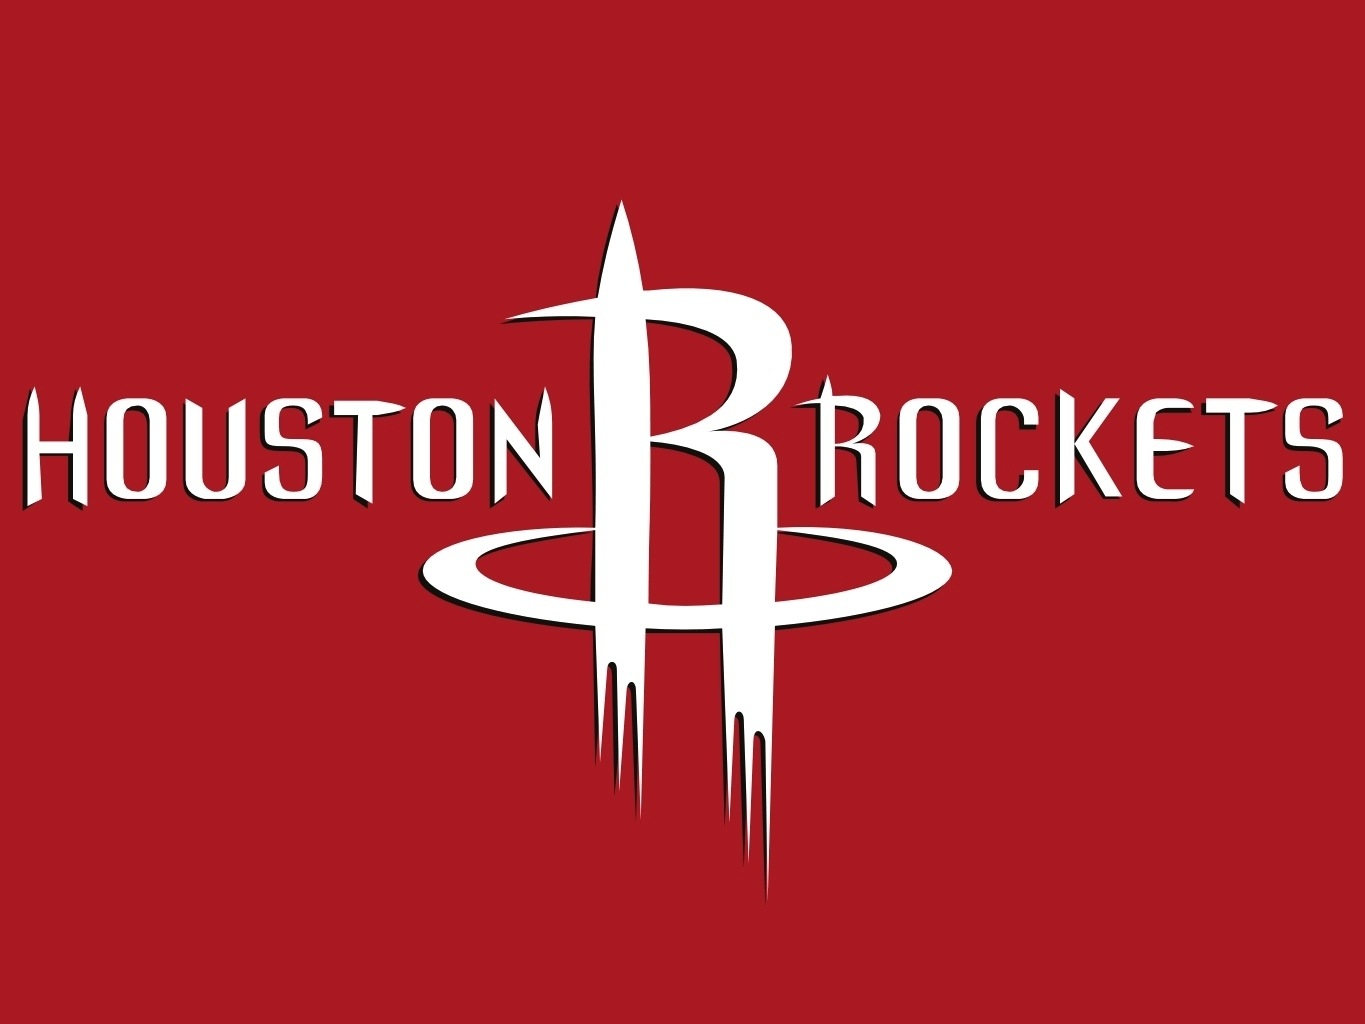 Houston Rockets Director of Esports on the future of eSports